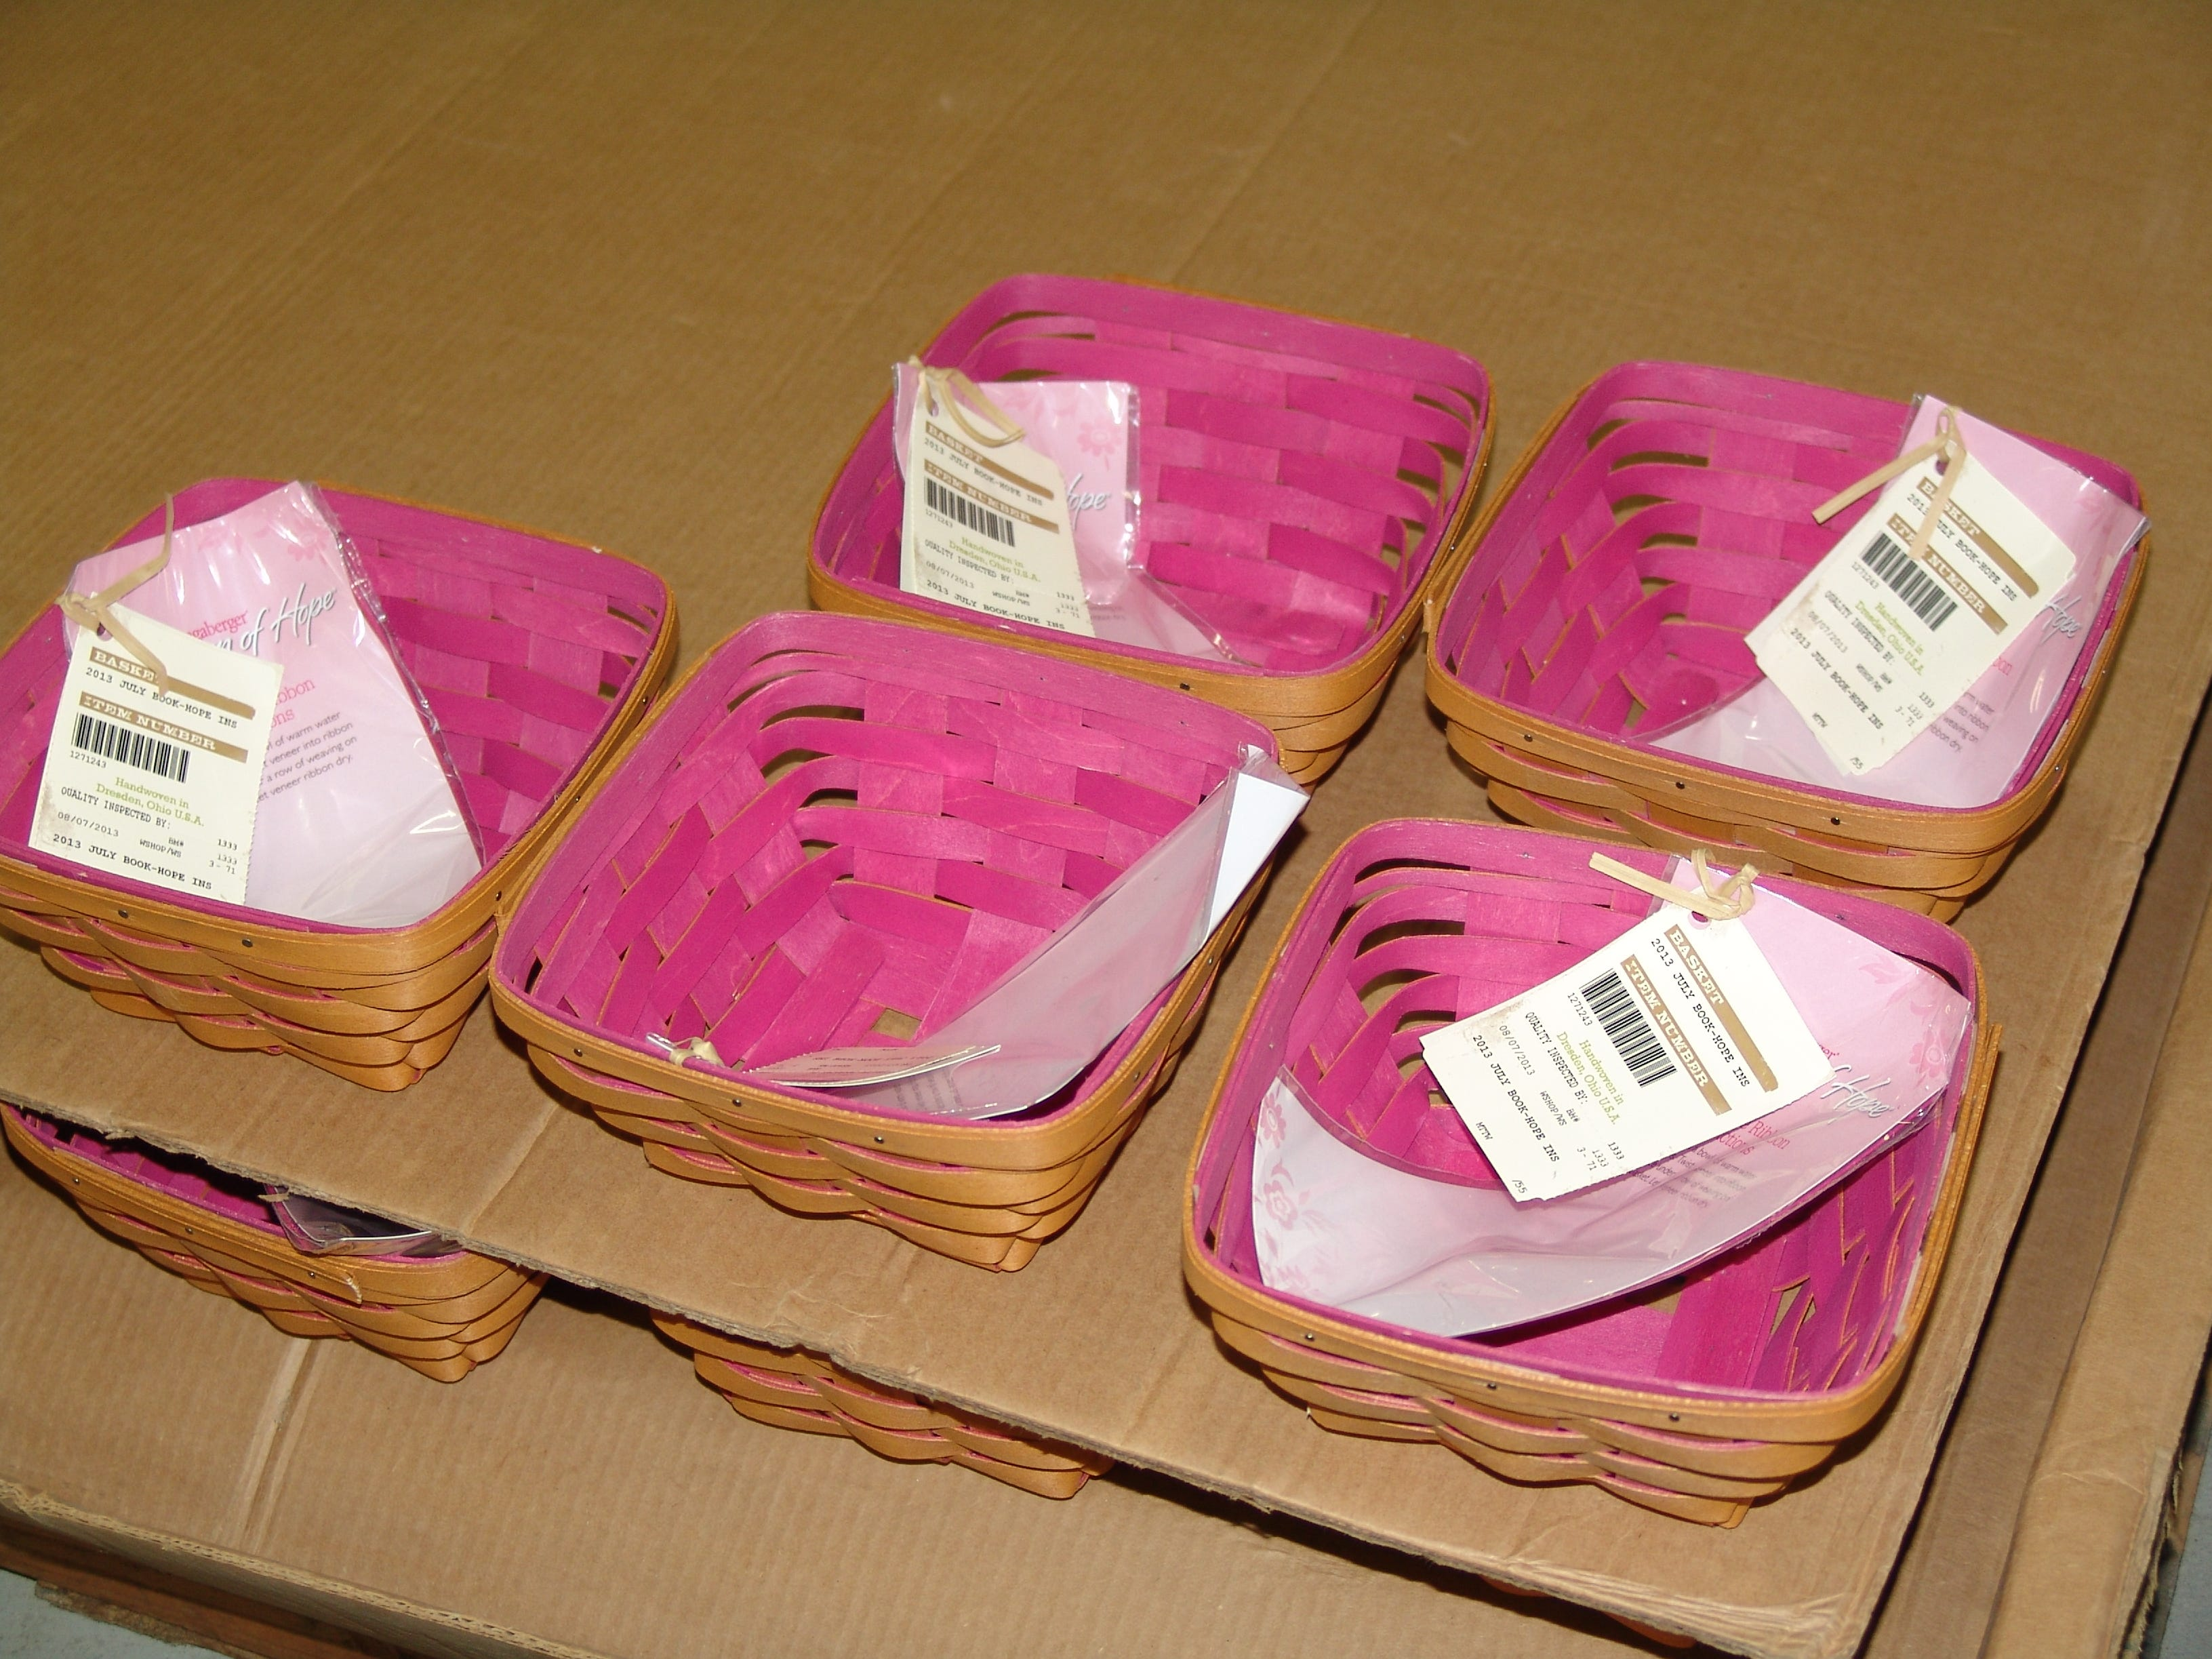 Horzon of Hope Baskets, pictured, are part of a Longaberger line that provides a portion of proceeds to the American Cancer Society to support breast cancer research and awareness. Dave Longaberger founded the Longaberger Company in 1973 in Dresden. Currently, more than 20,000 home consultants sell Longaberger baskets, accessories and other products.